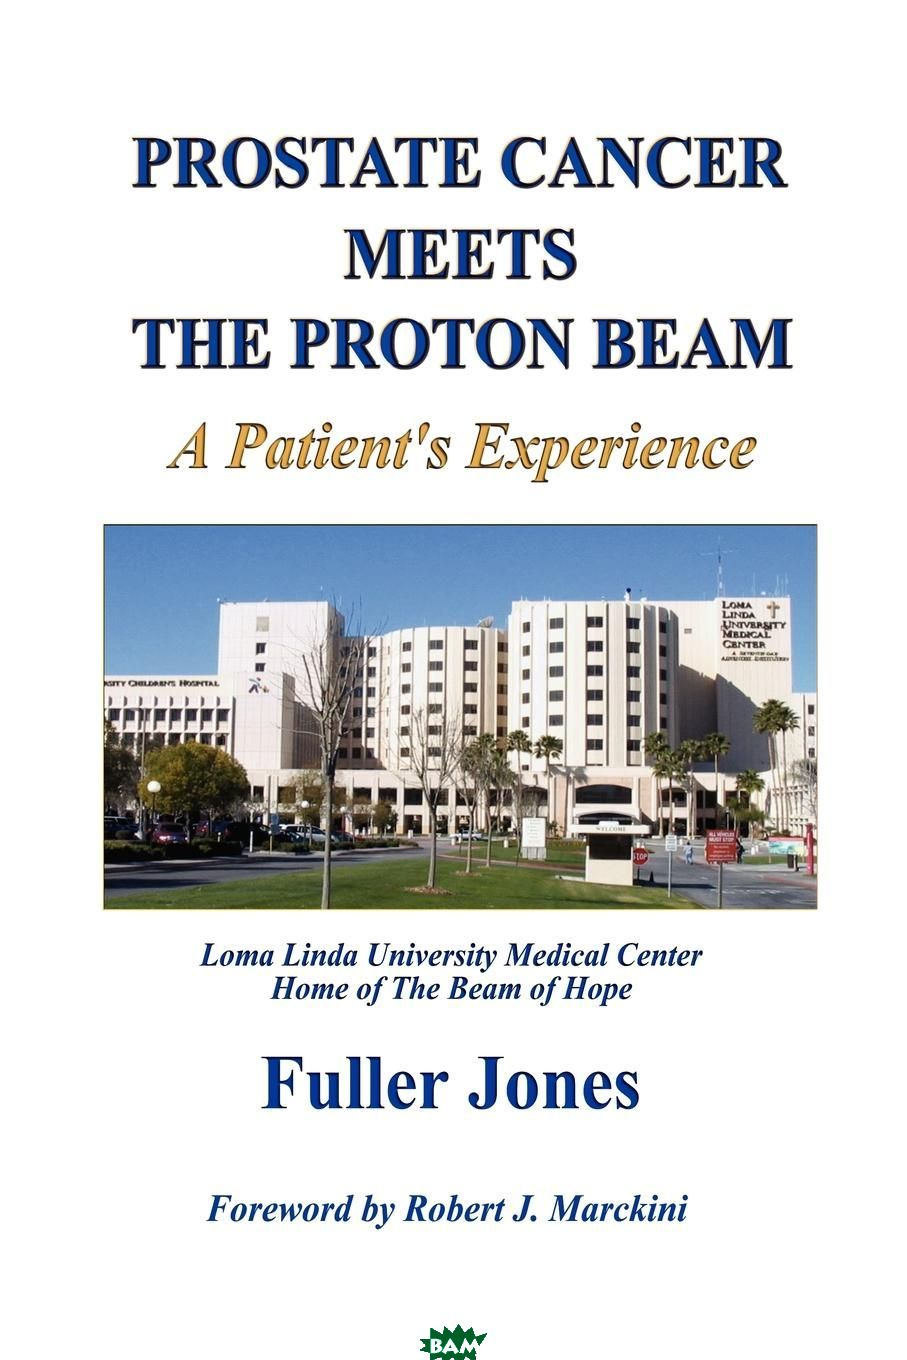 Купить Prostate Cancer Meets the Proton Beam, Fuller Jones, 9780615192437